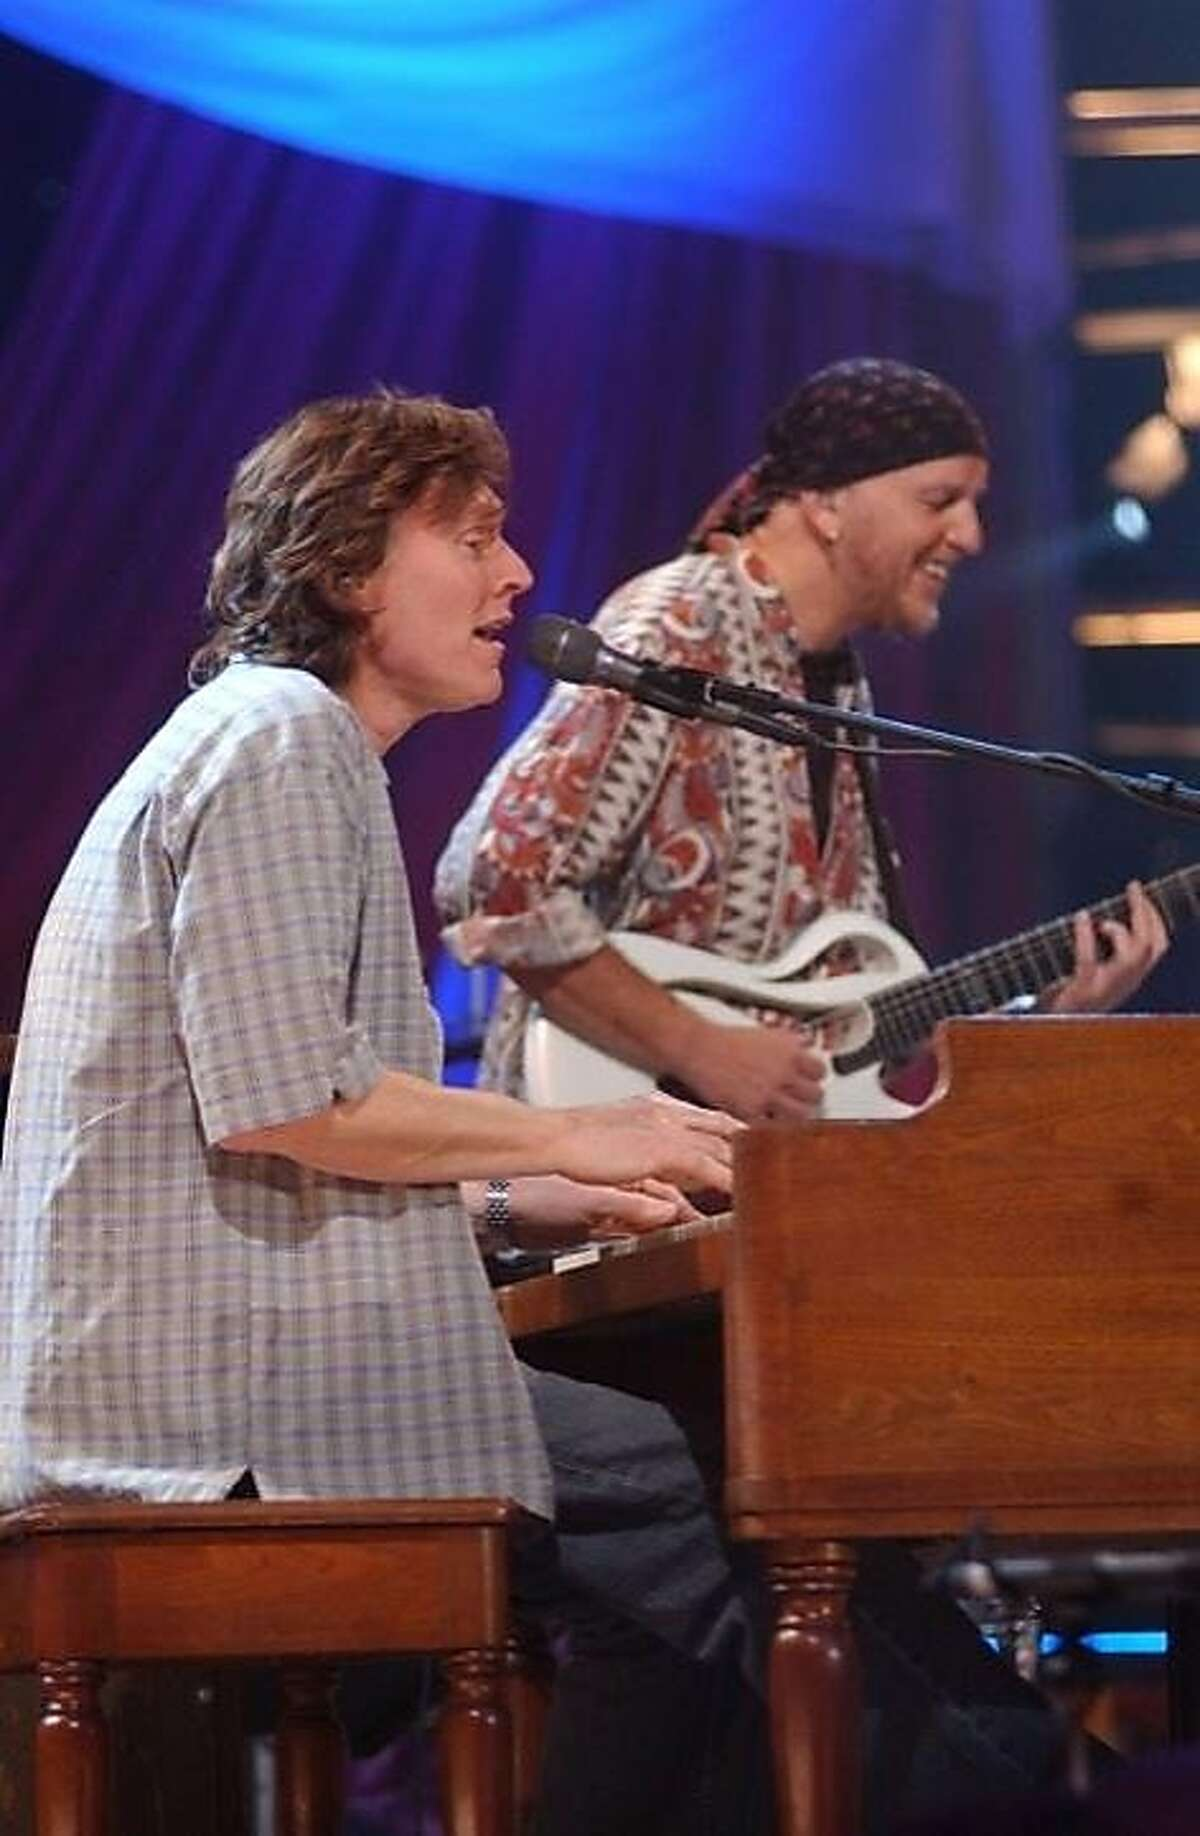 Steve Winwood, at the piano, with Bay Area's Jose Neto